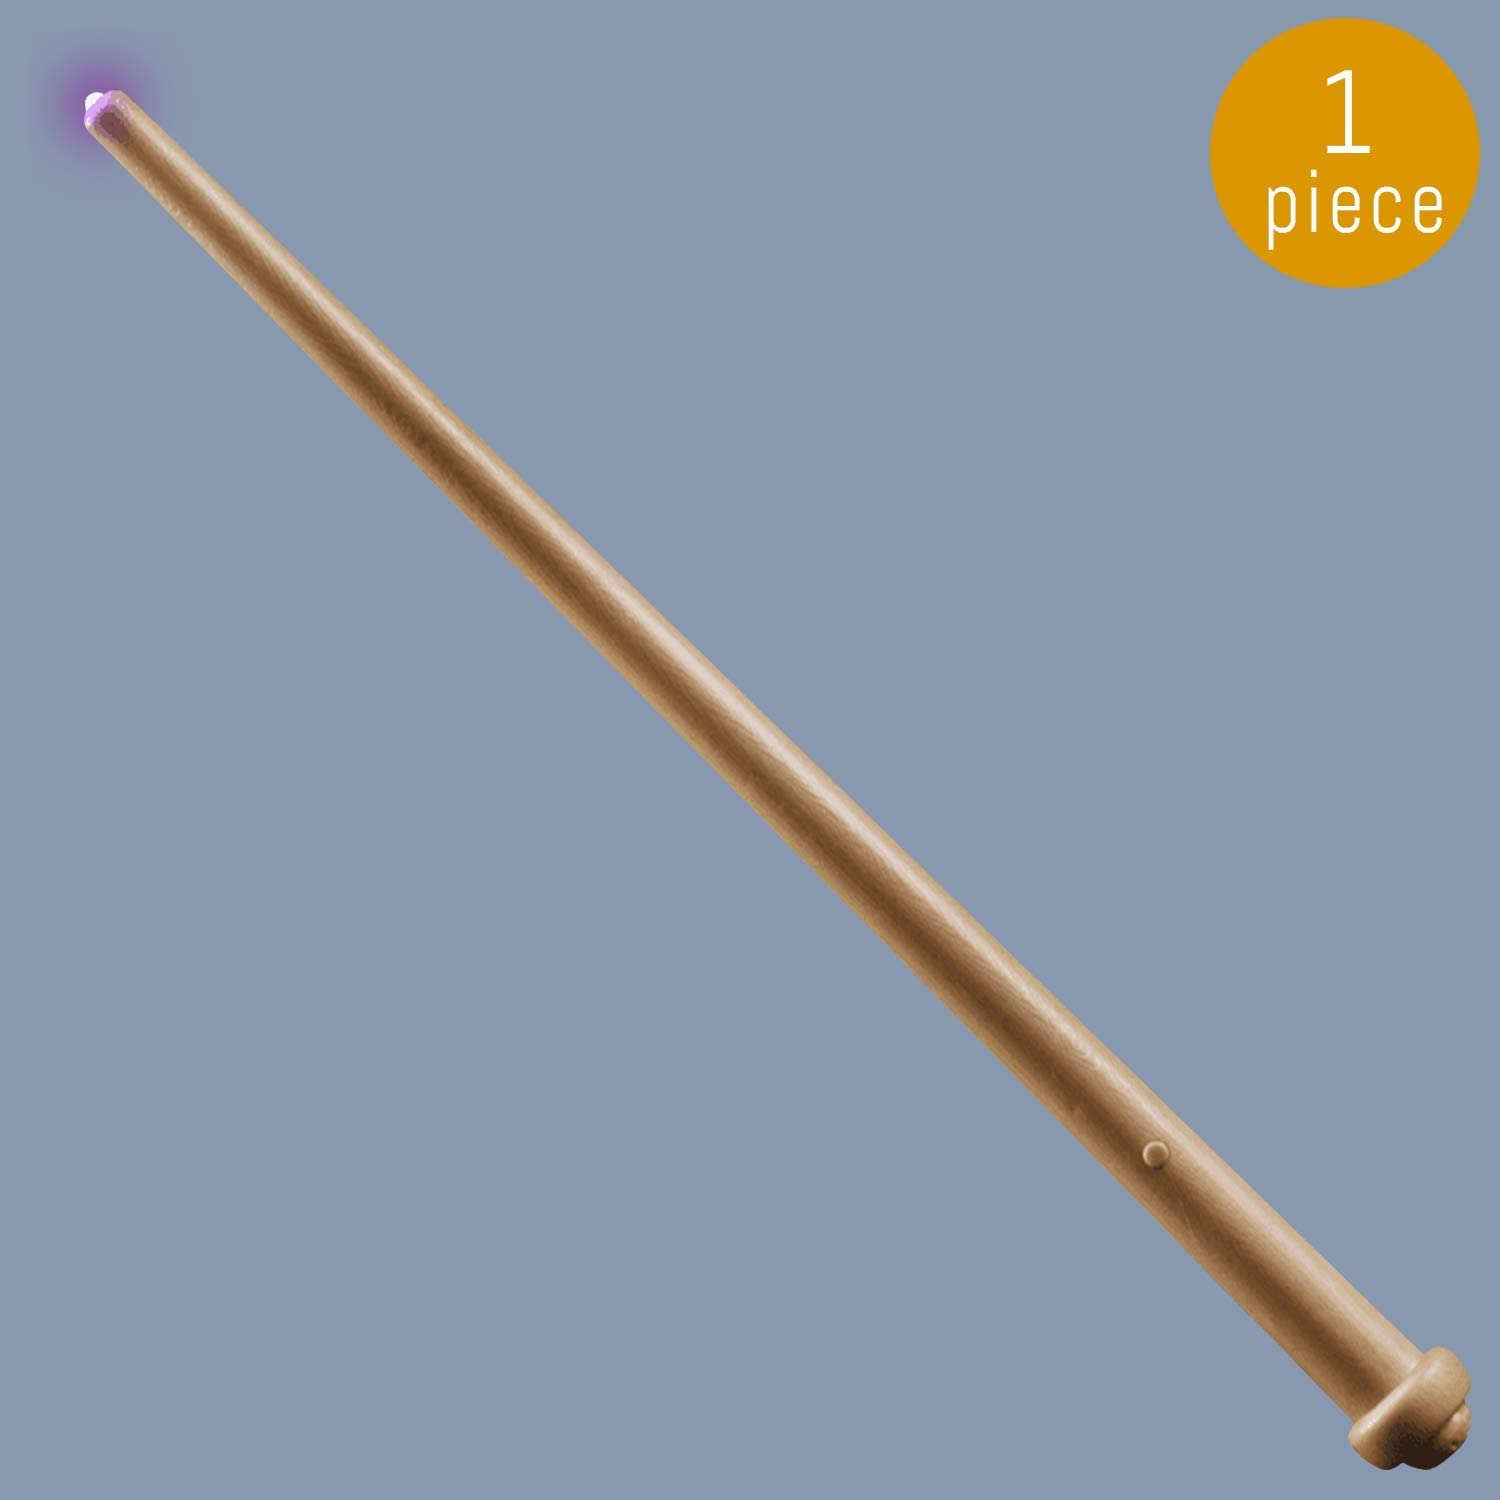 Lumistick LED Light Up Wizard Wand - Pretend Play Witch Wand with Lights Sounds - Great Gift for Kids Party Favors, Birthday, Festival (1 Wand)